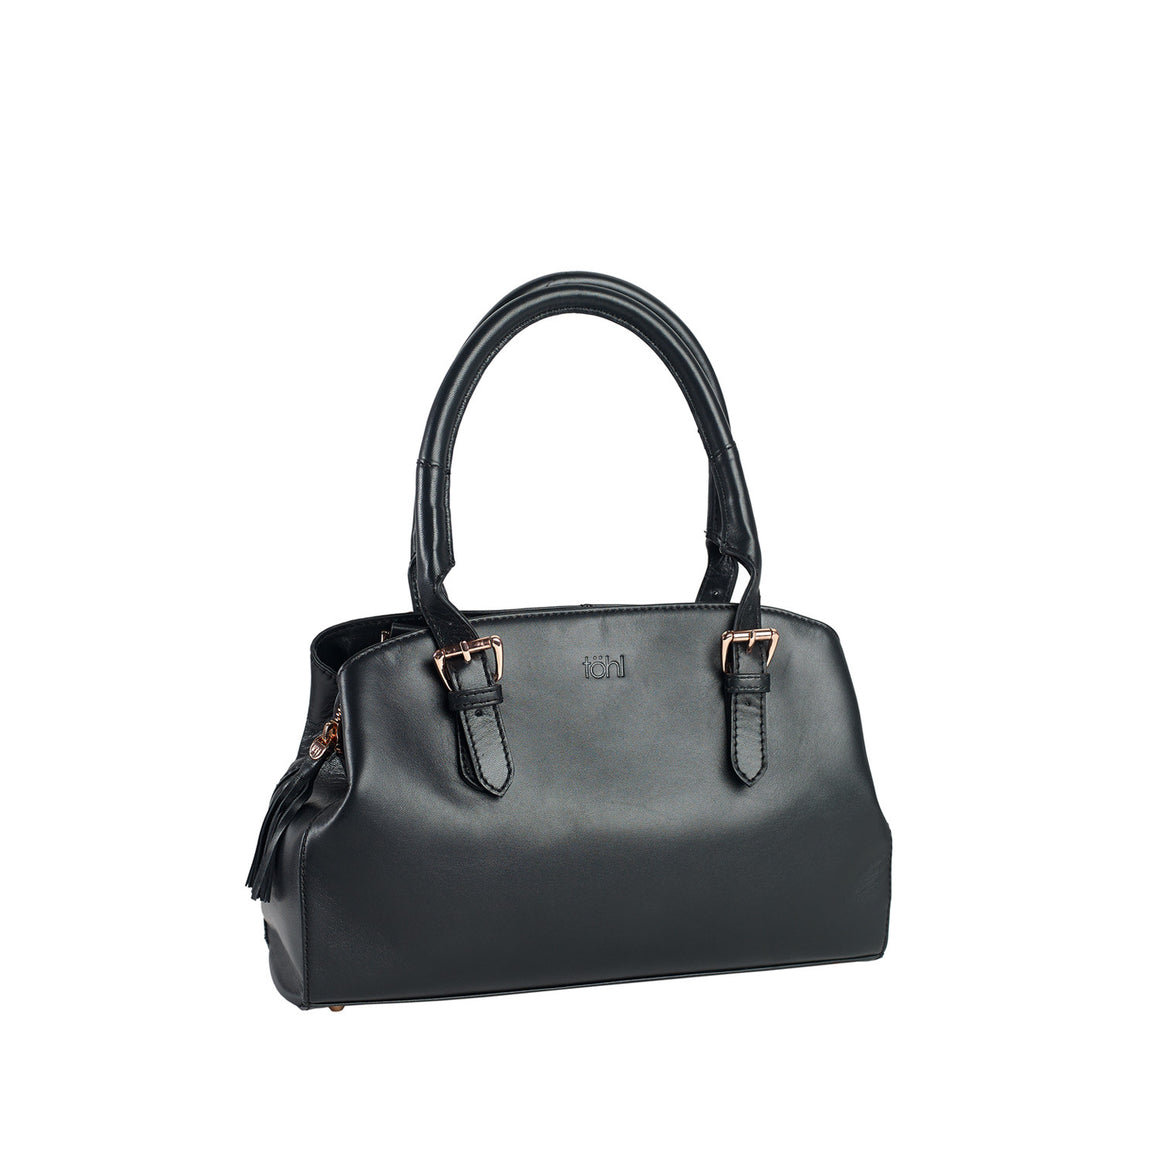 HH 0010 - TOHL ALVA WOMEN'S DAY BAG - CHARCOAL BLACK